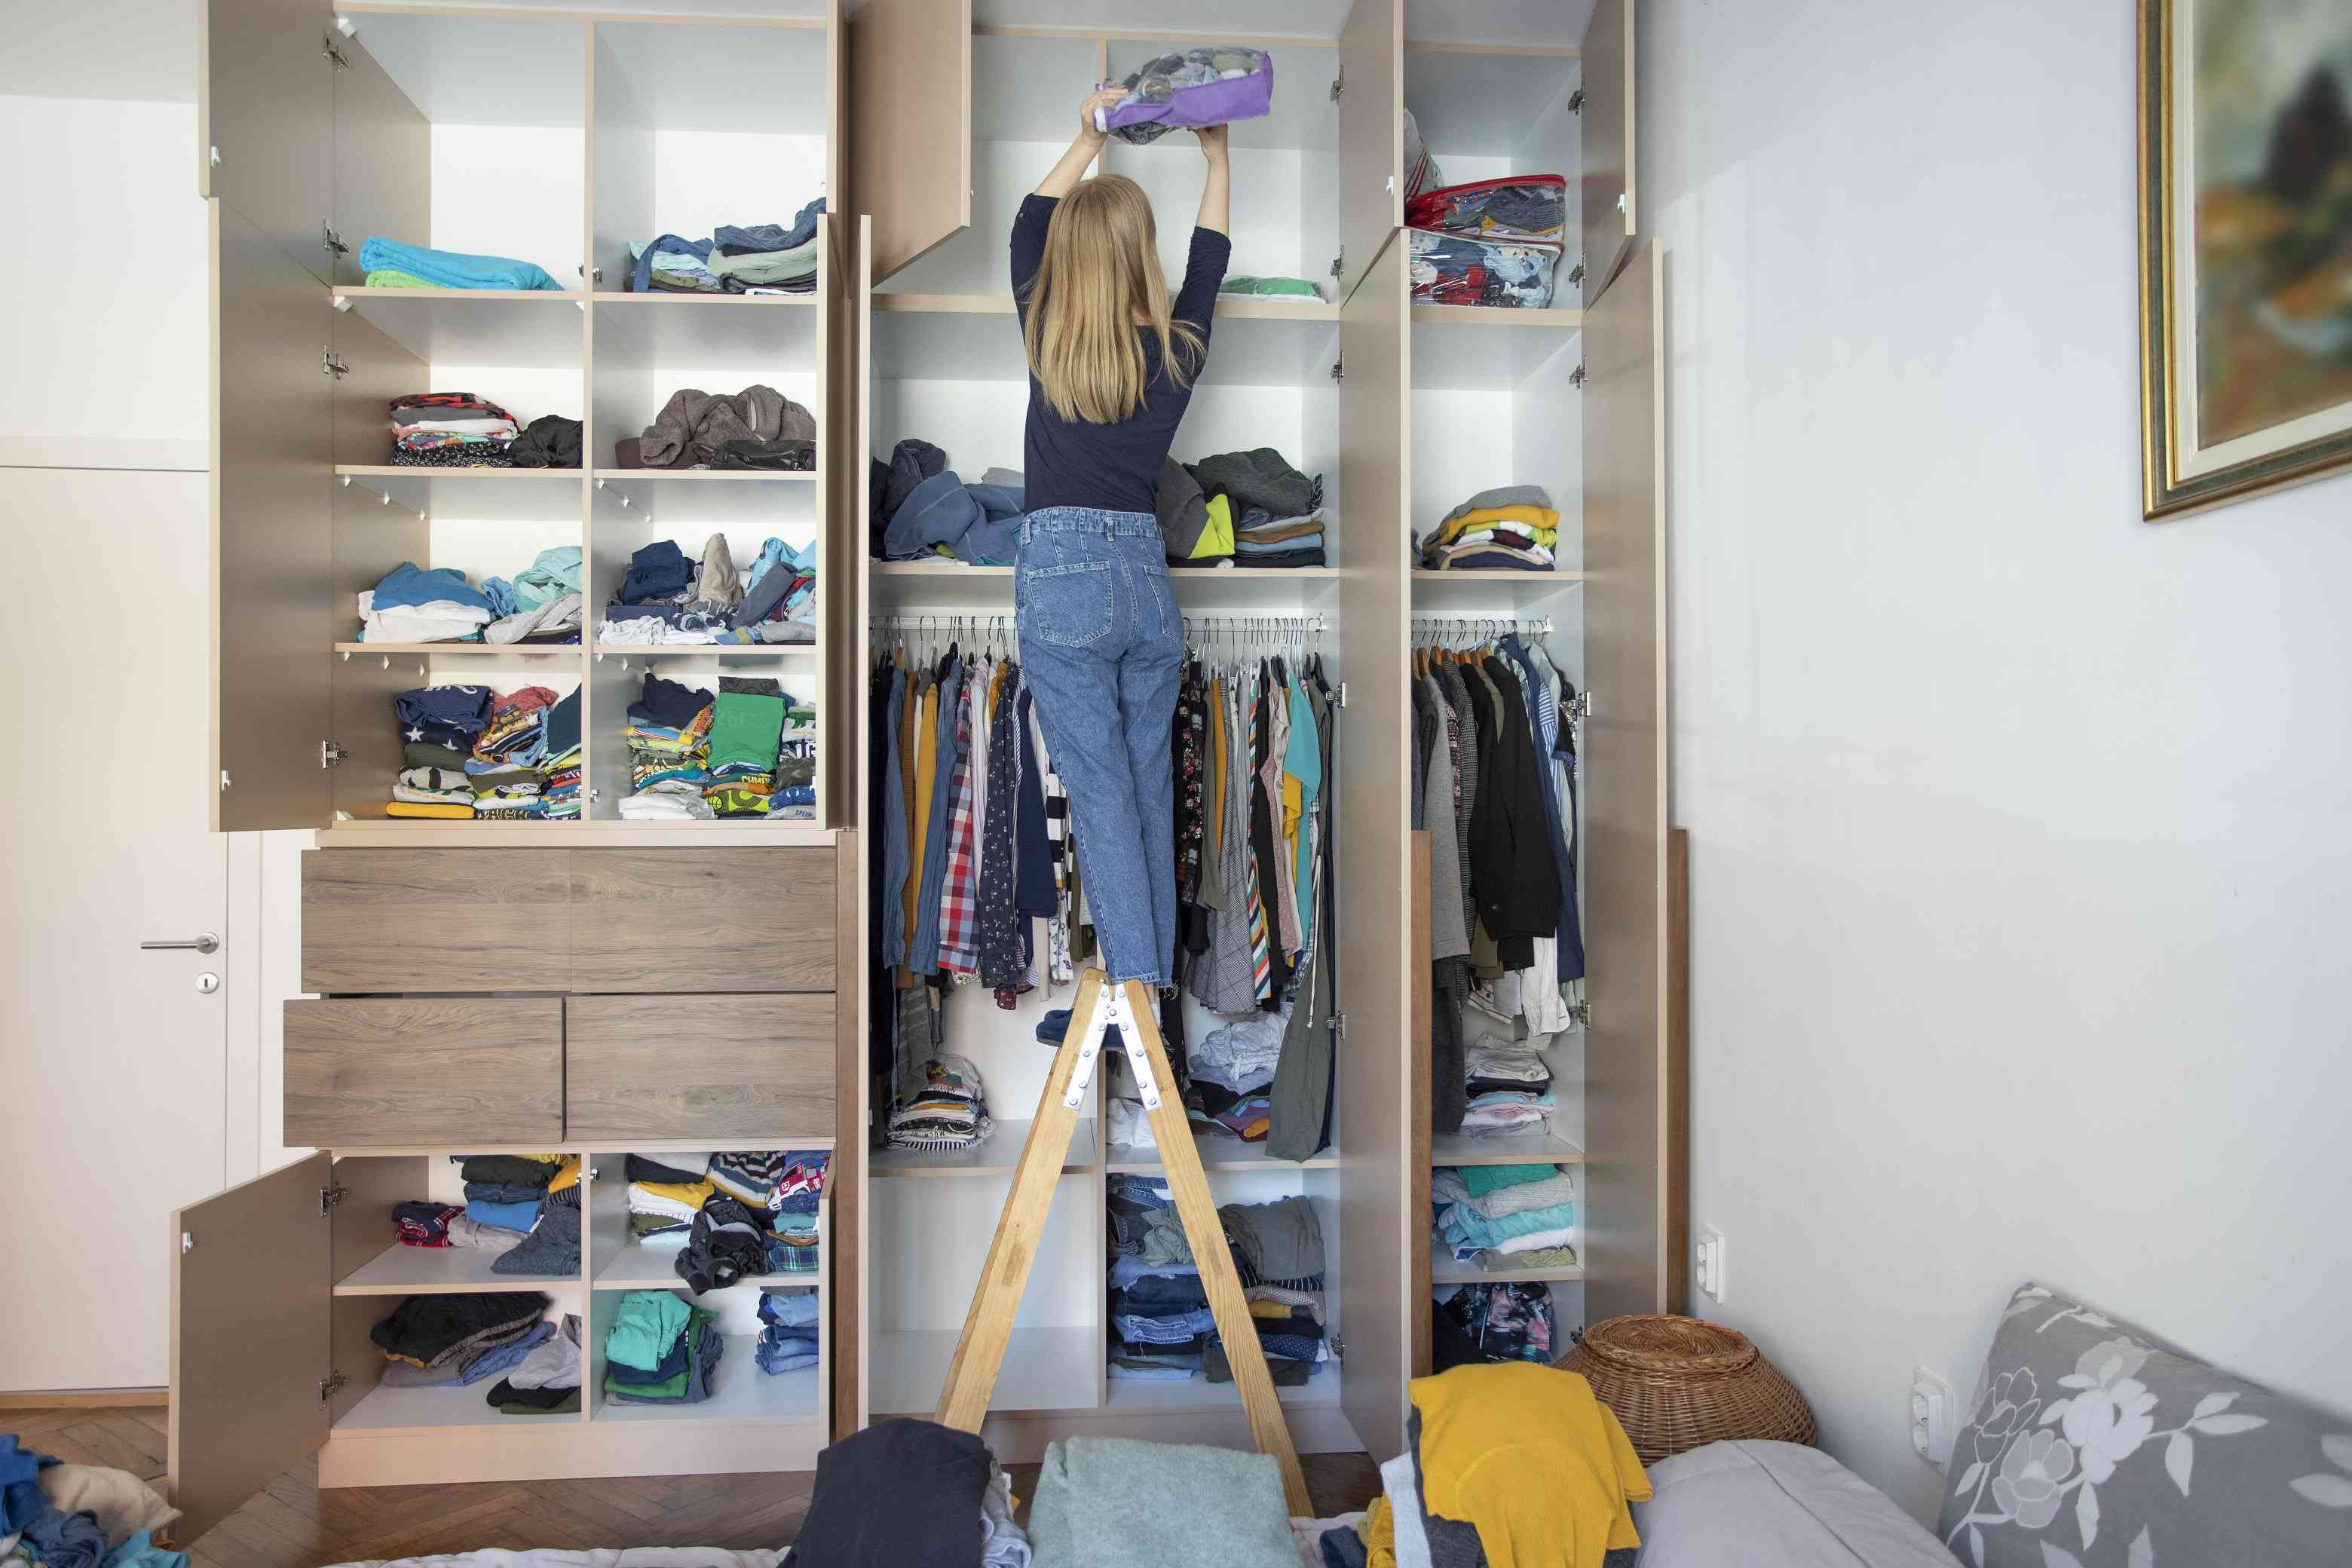 Woman cleaning her home and folding clothes